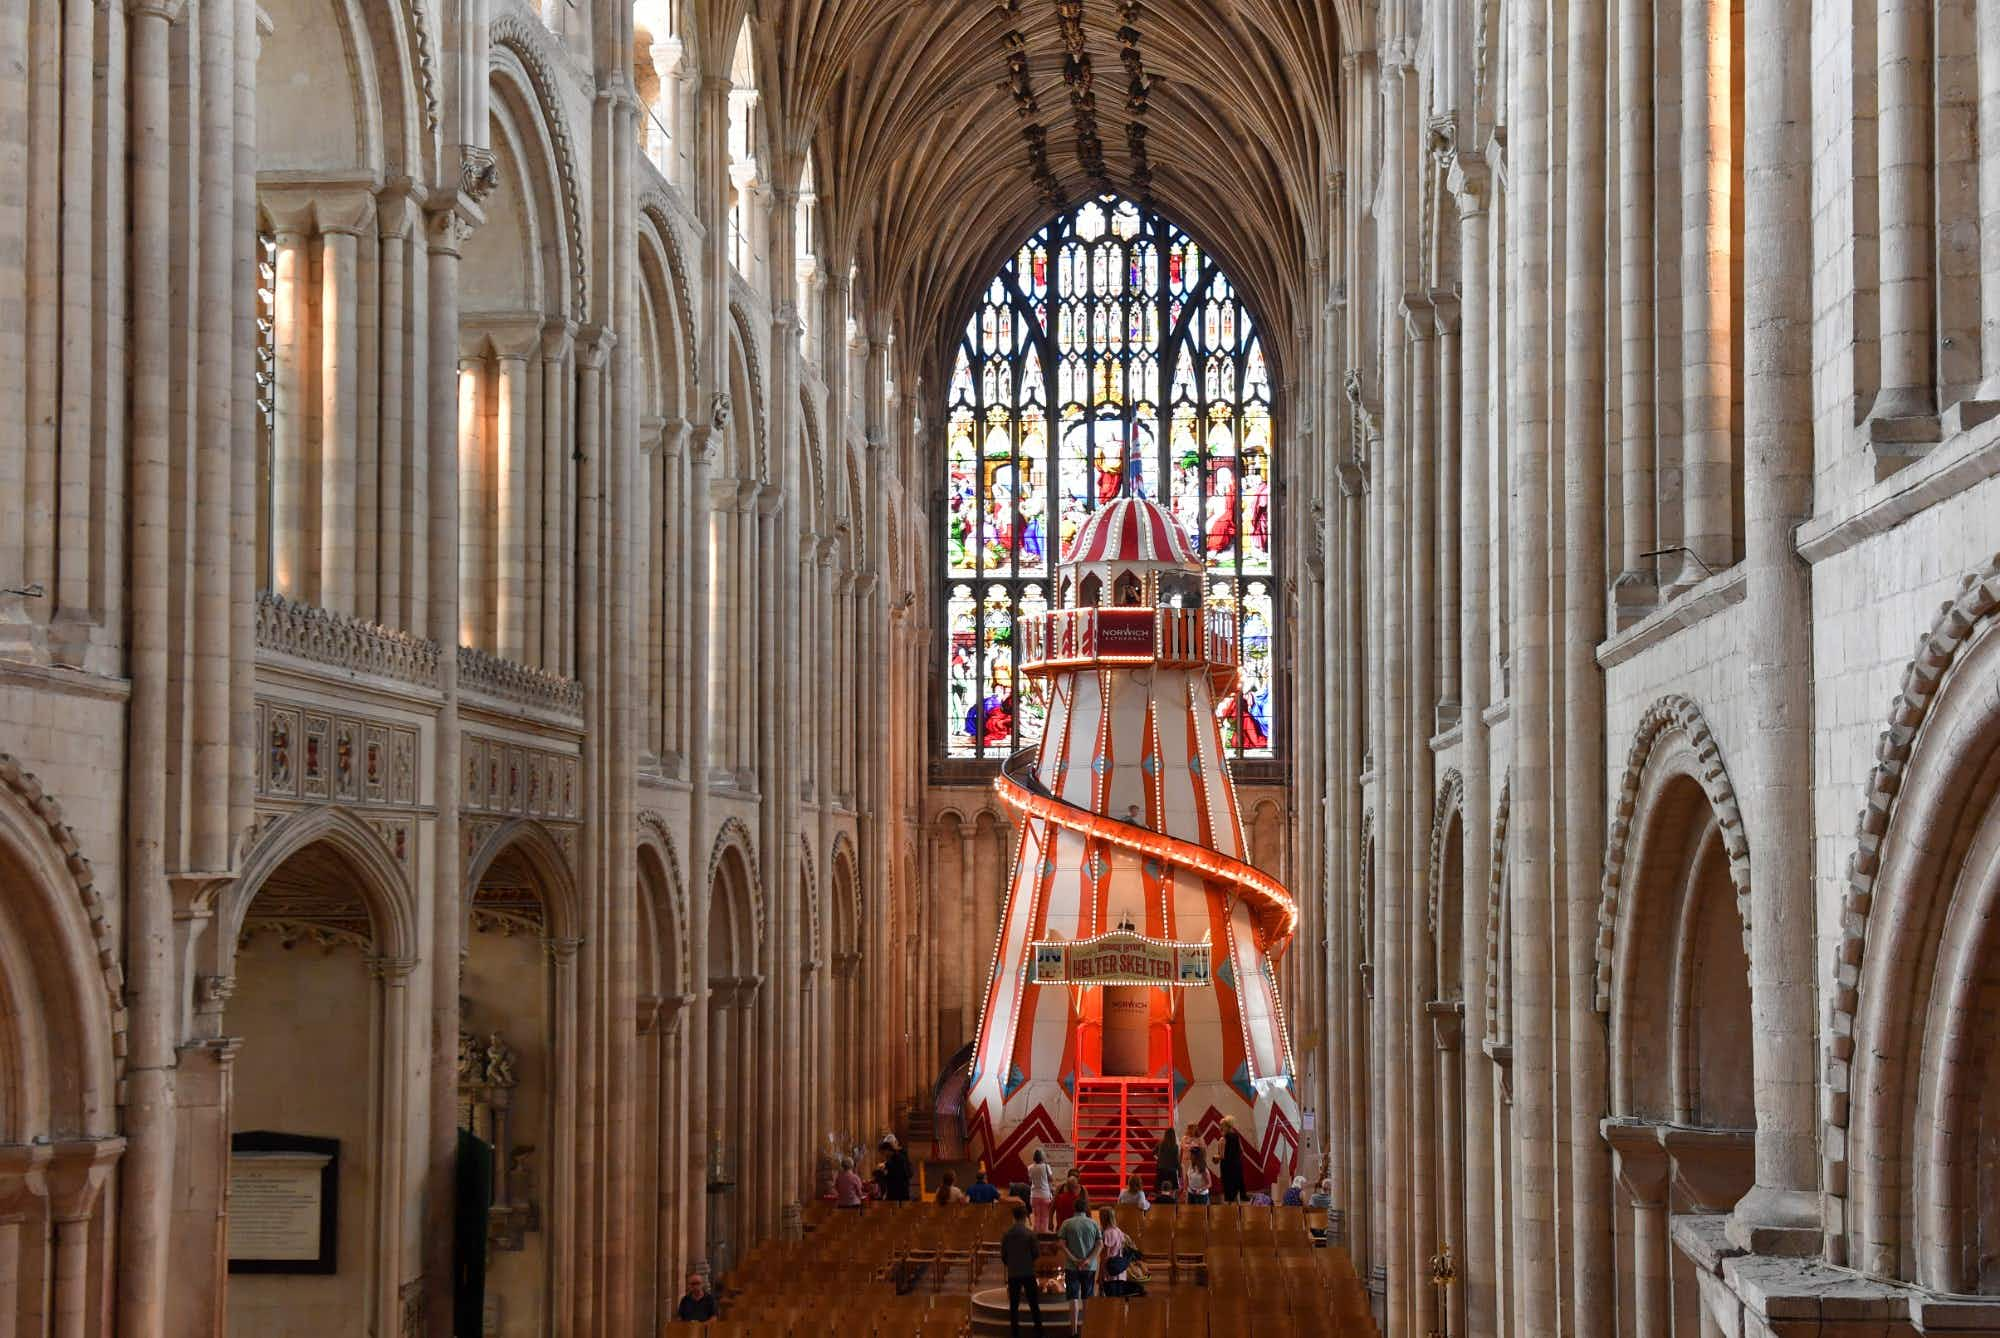 Slide down a colourful helter-skelter in this British cathedral